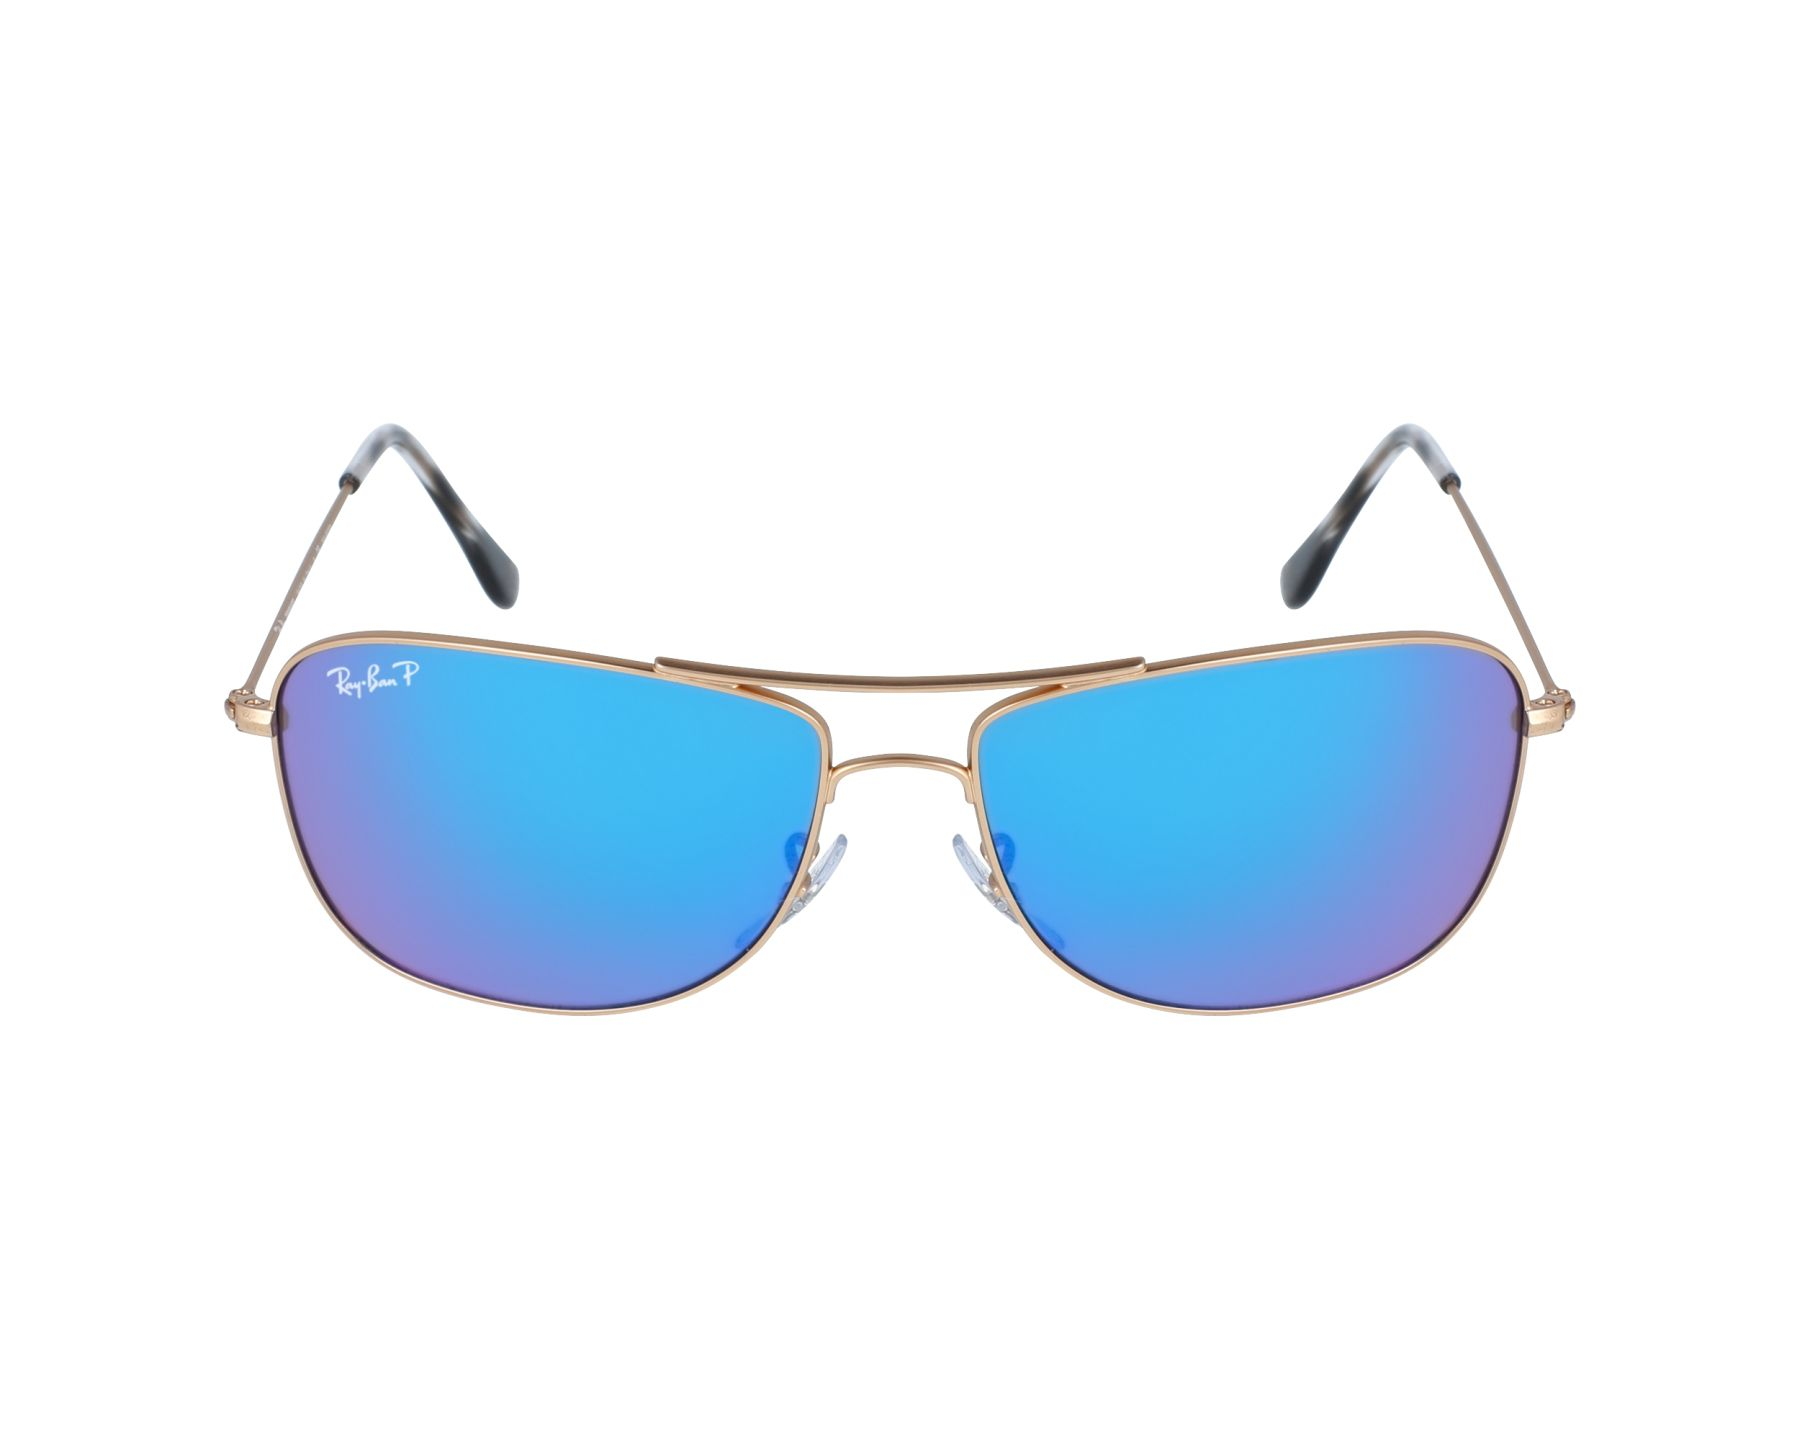 760557012f4 Sunglasses Ray-Ban RB-3543 112 A1 59-16 Gold profile view